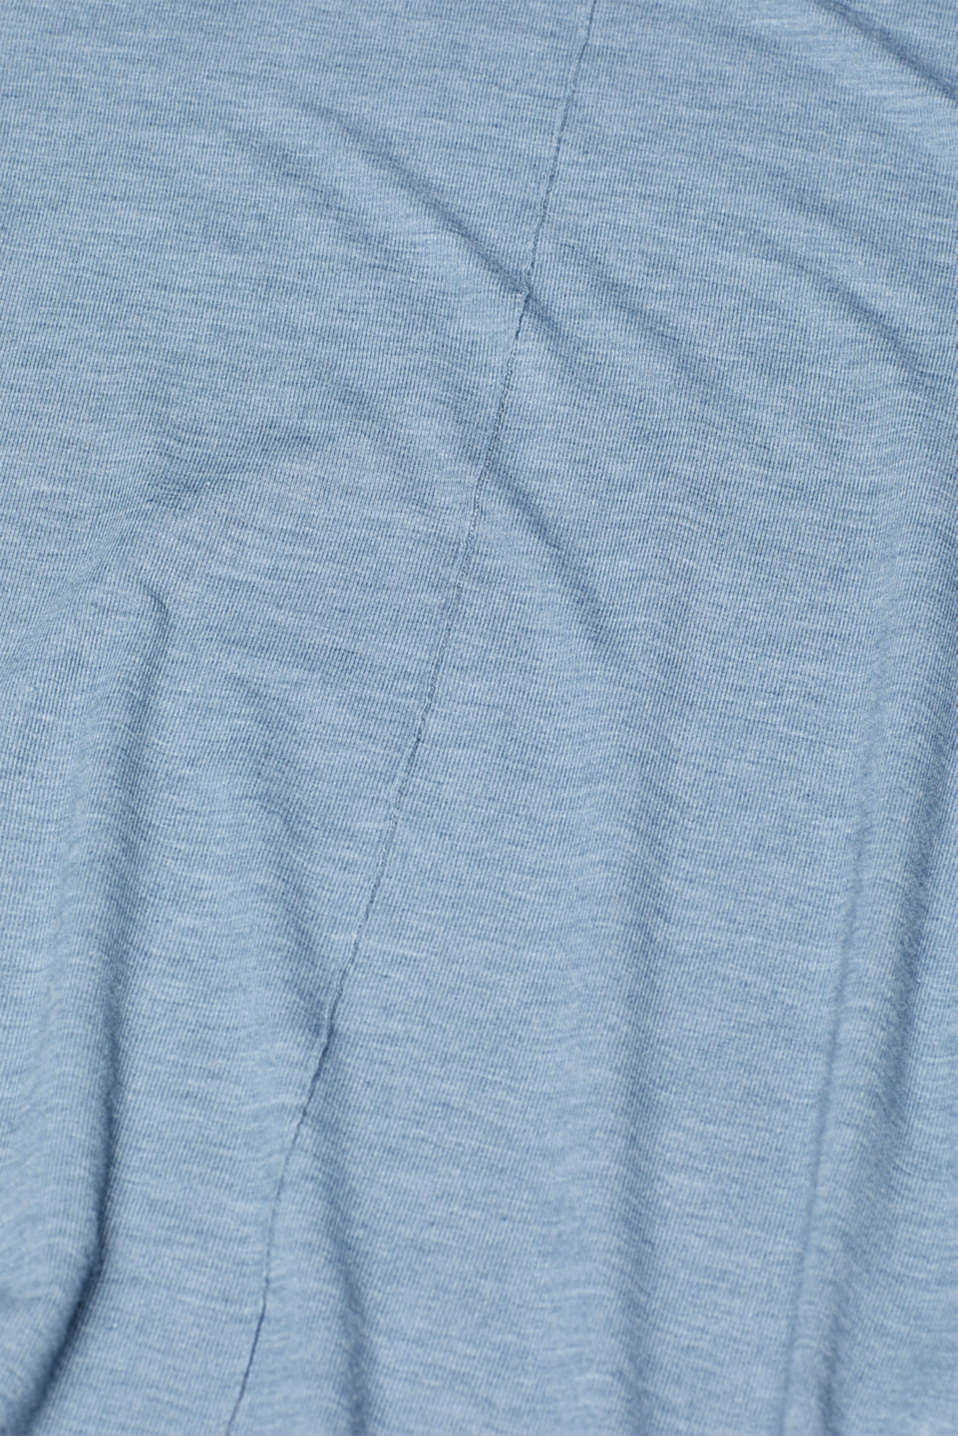 T-Shirts, GREY BLUE, detail image number 4